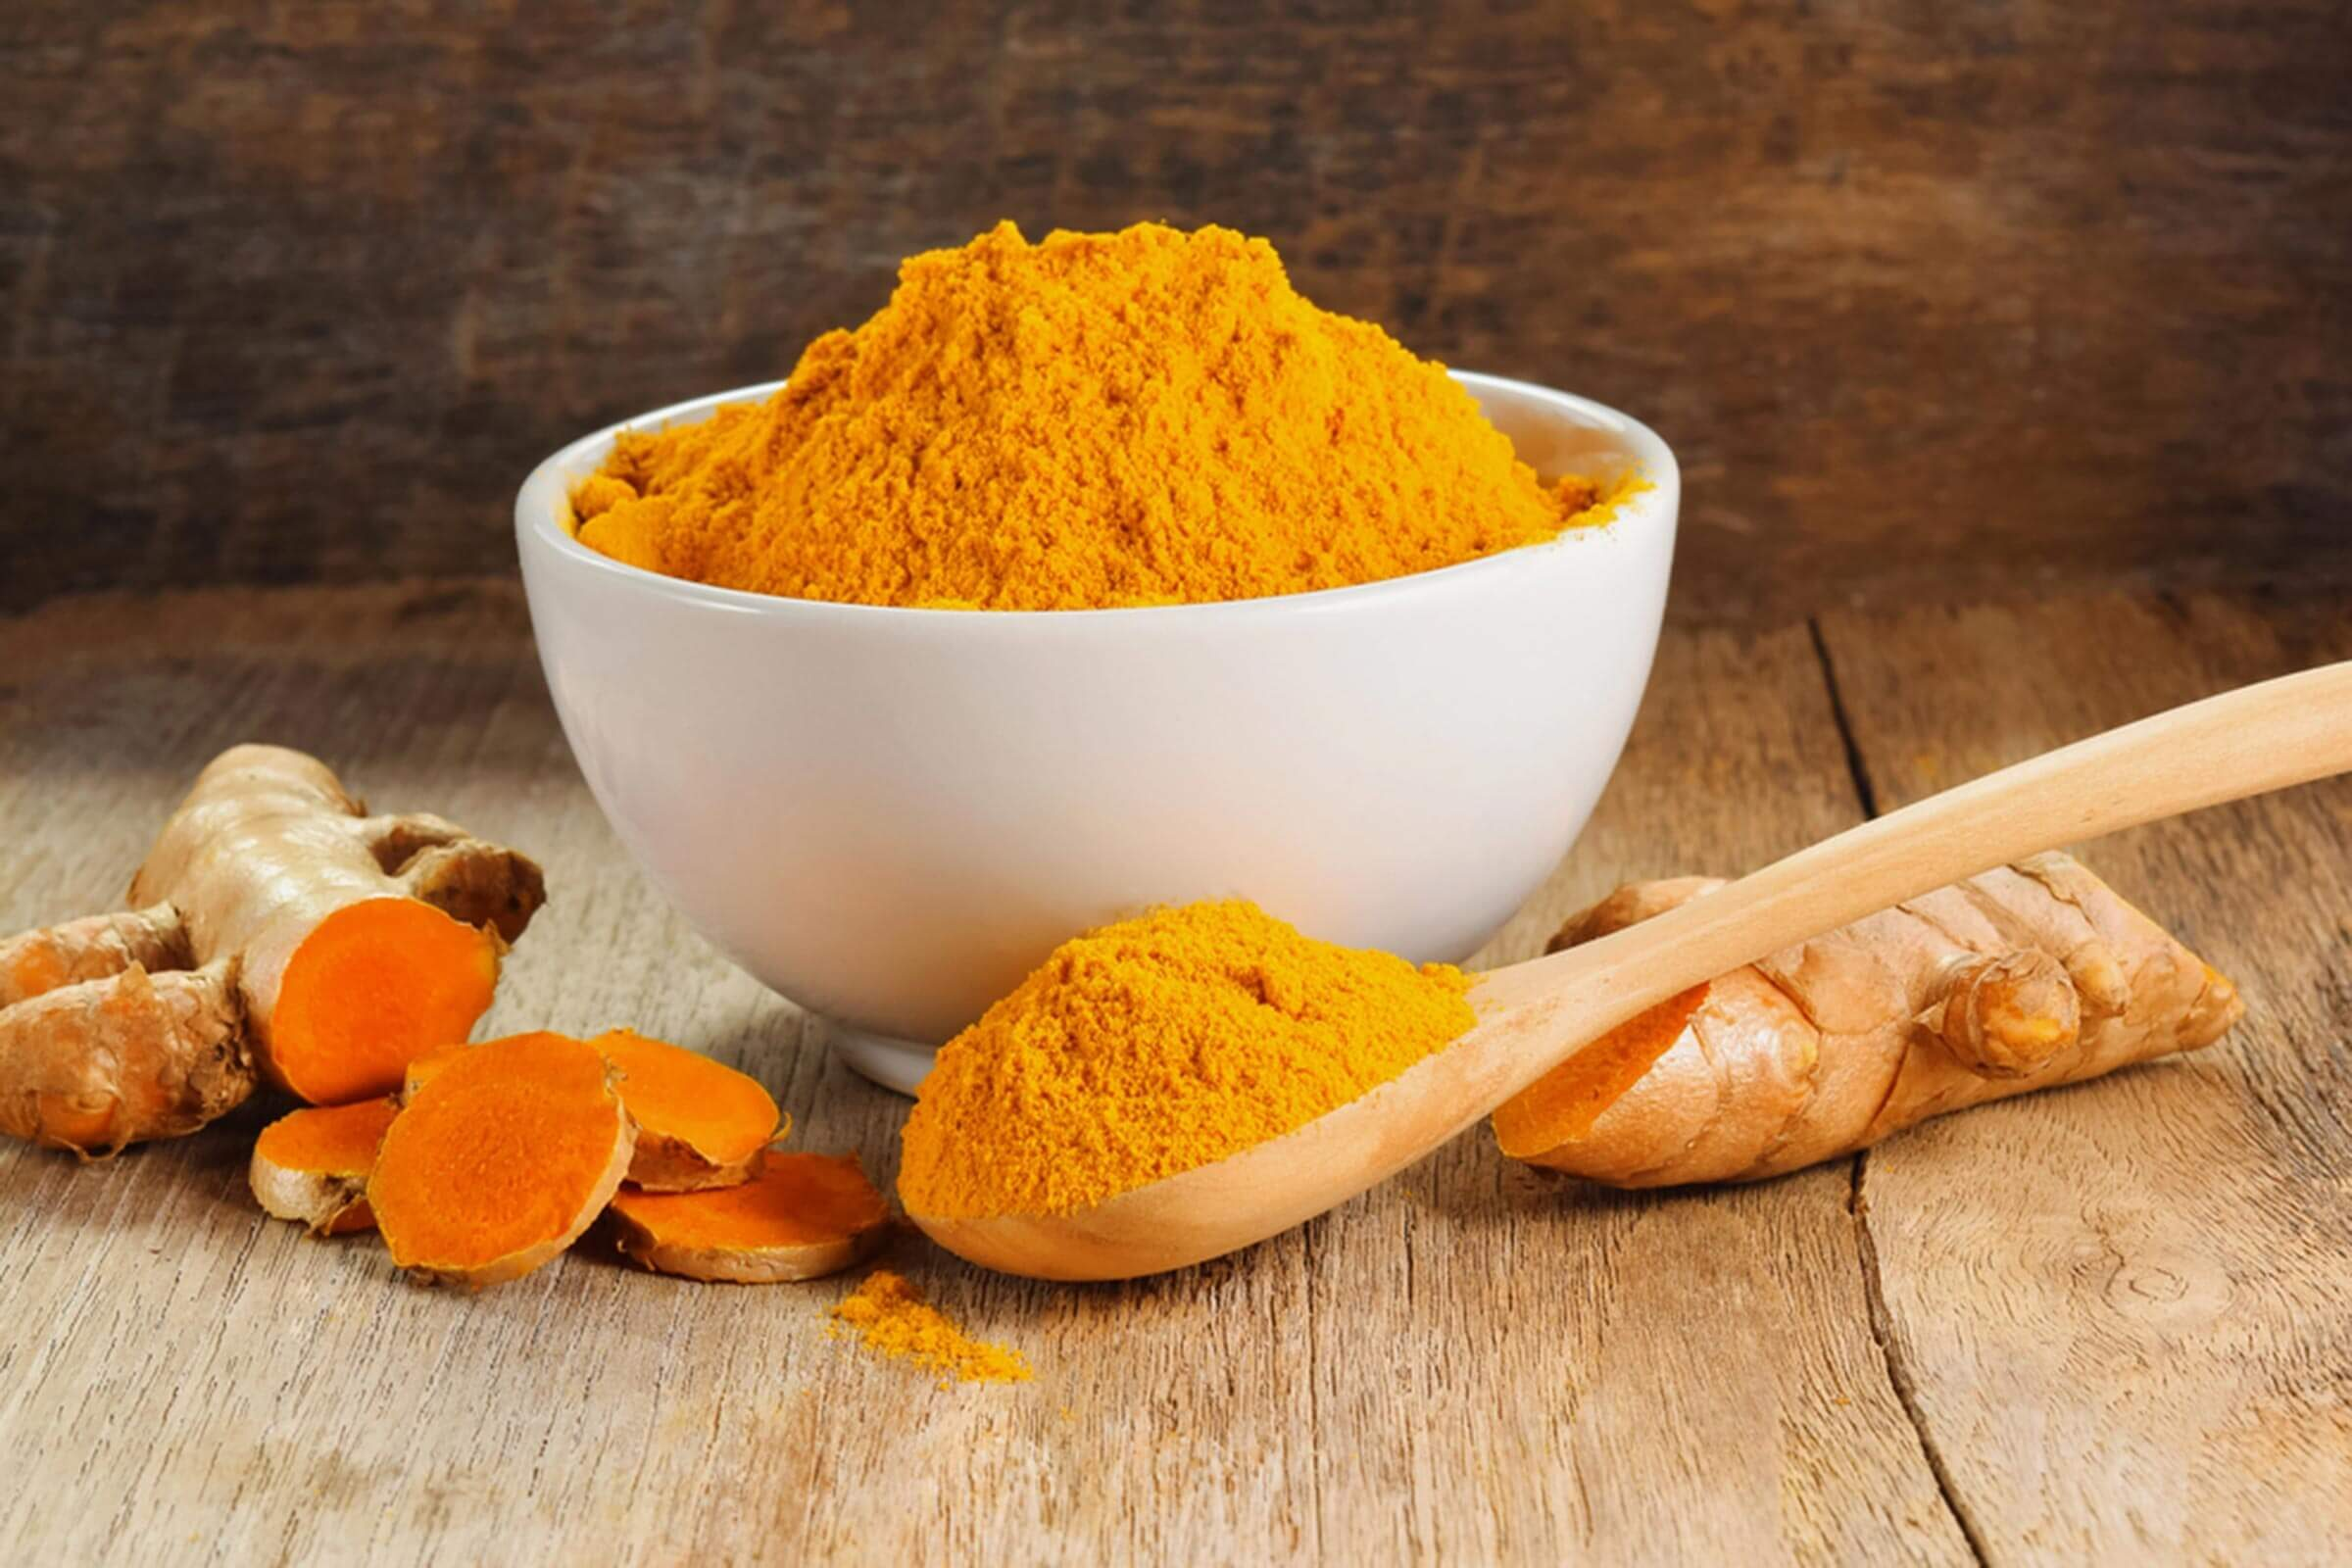 Turmeric powder in a bowl surrounded by the root and a wooden spoon